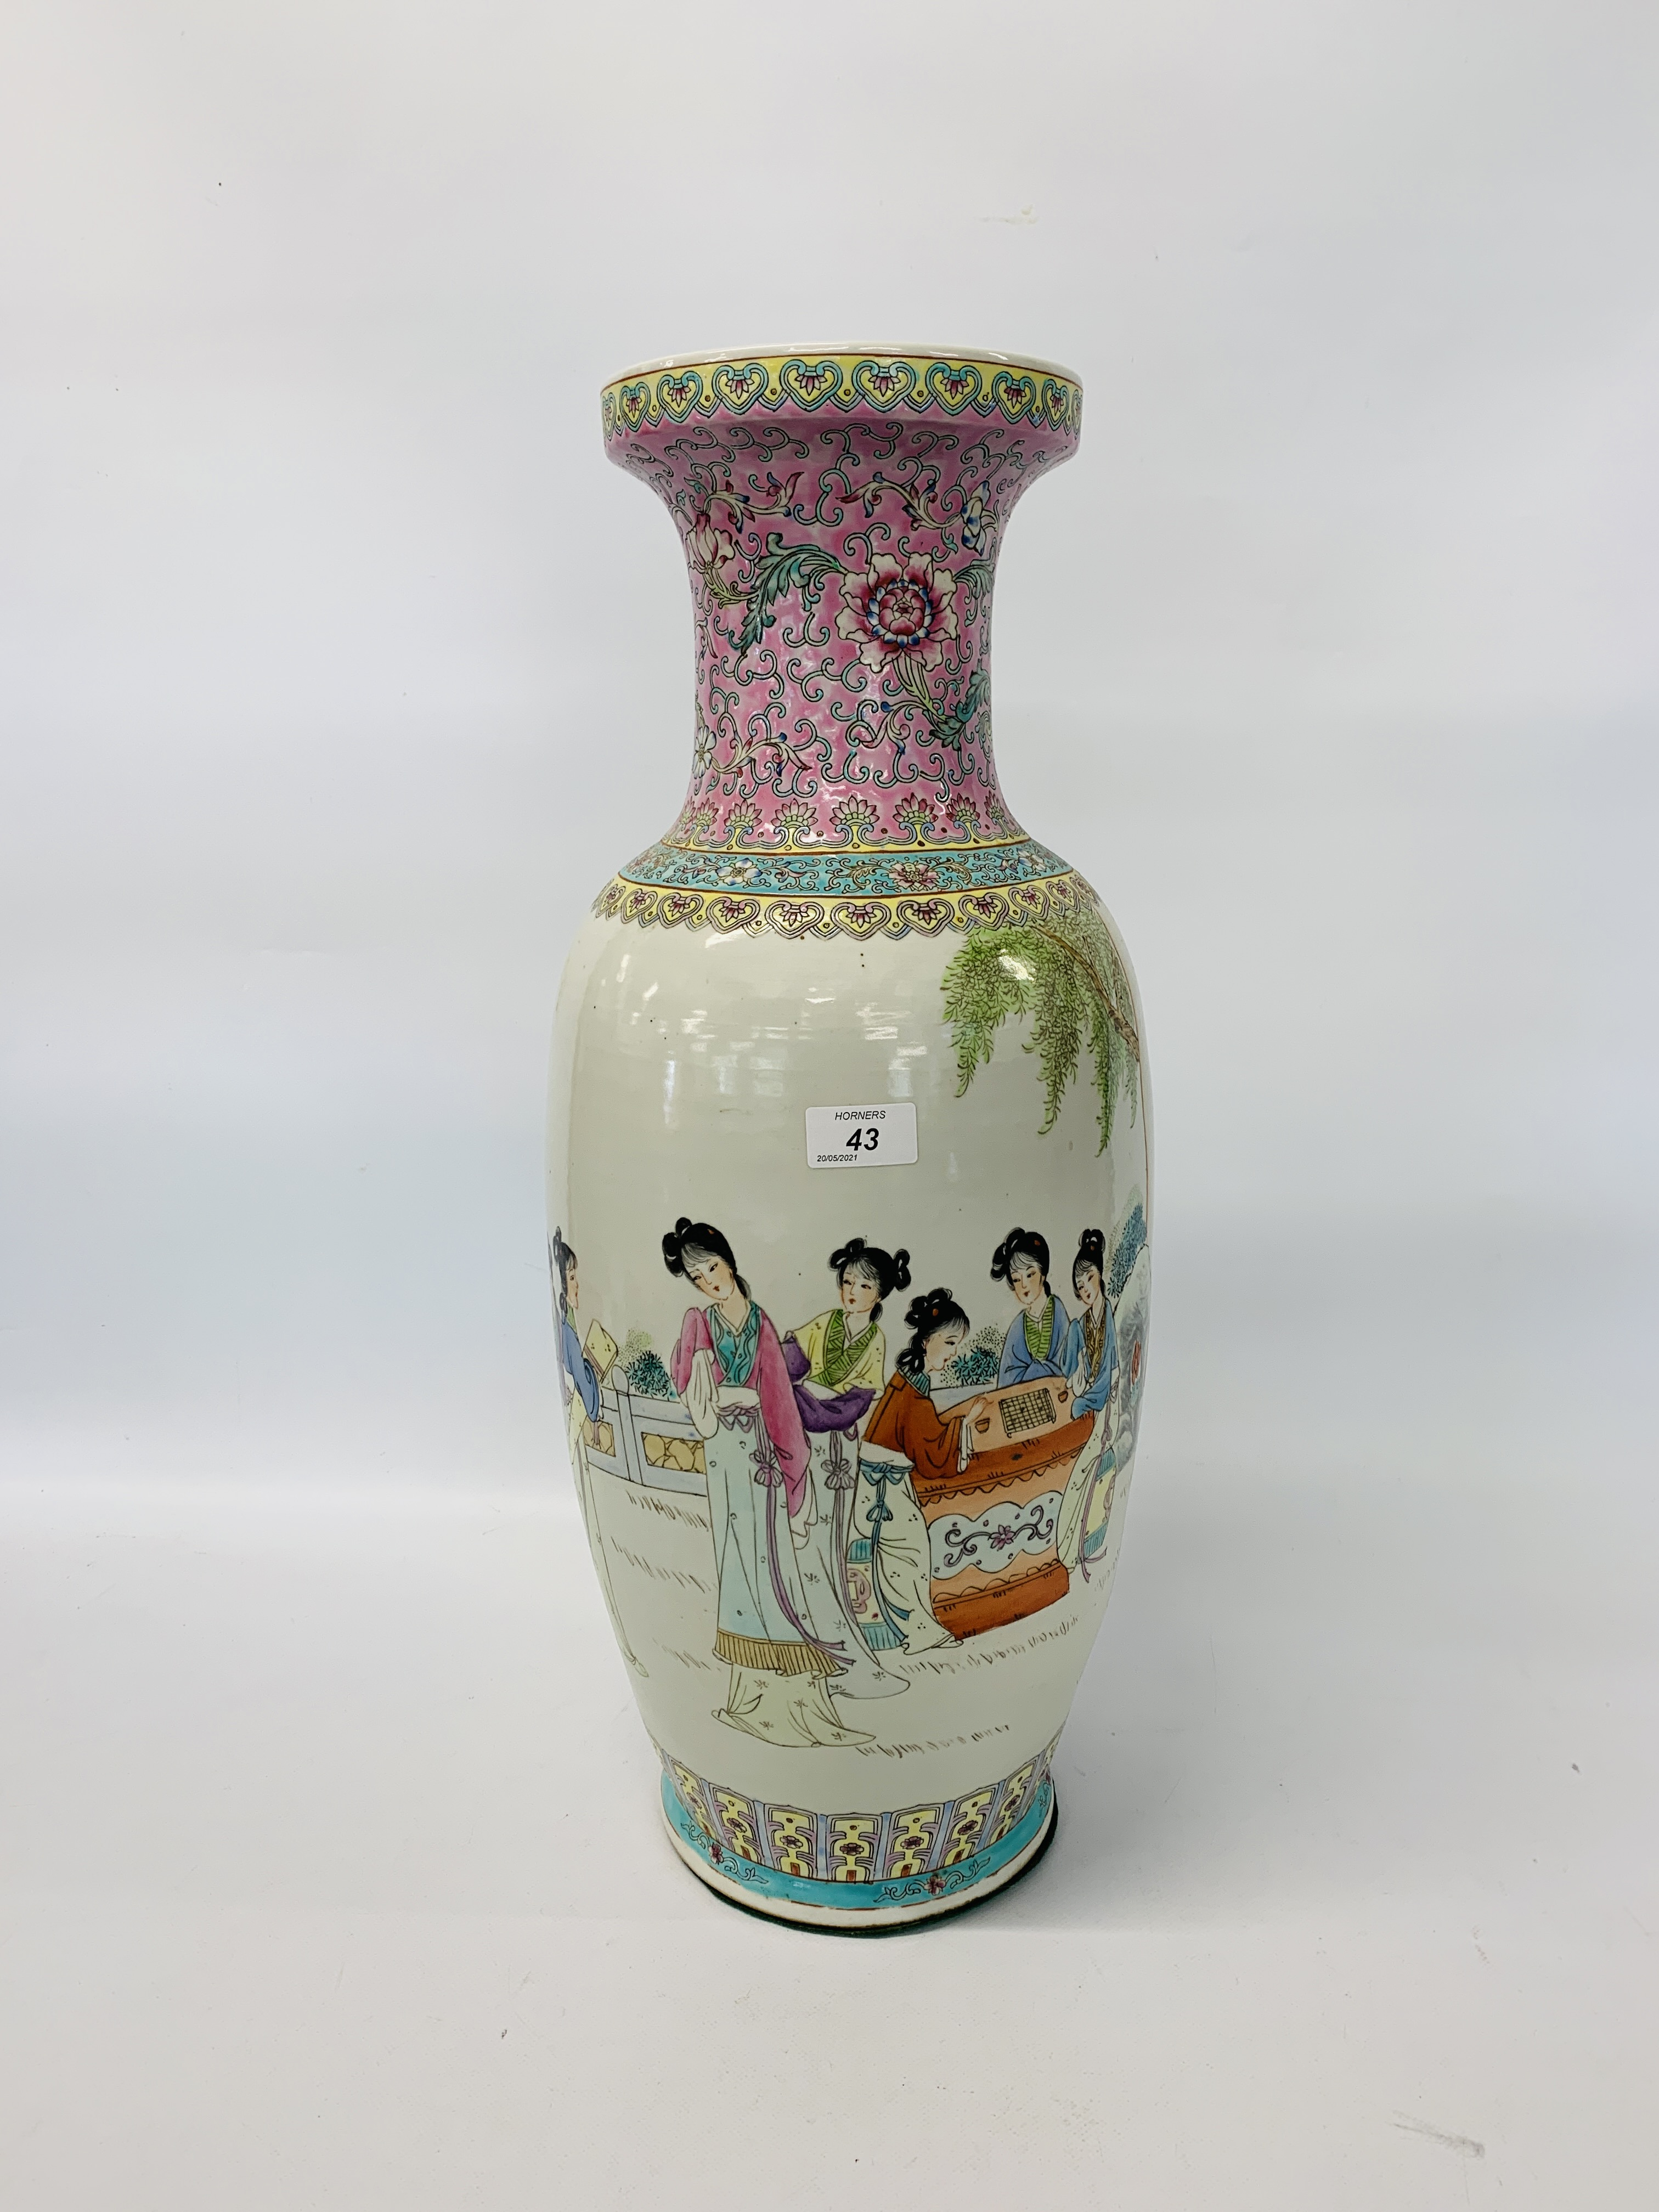 A LARGE CHINESE POLYCHROME VASE - HEIGHT 60CM.